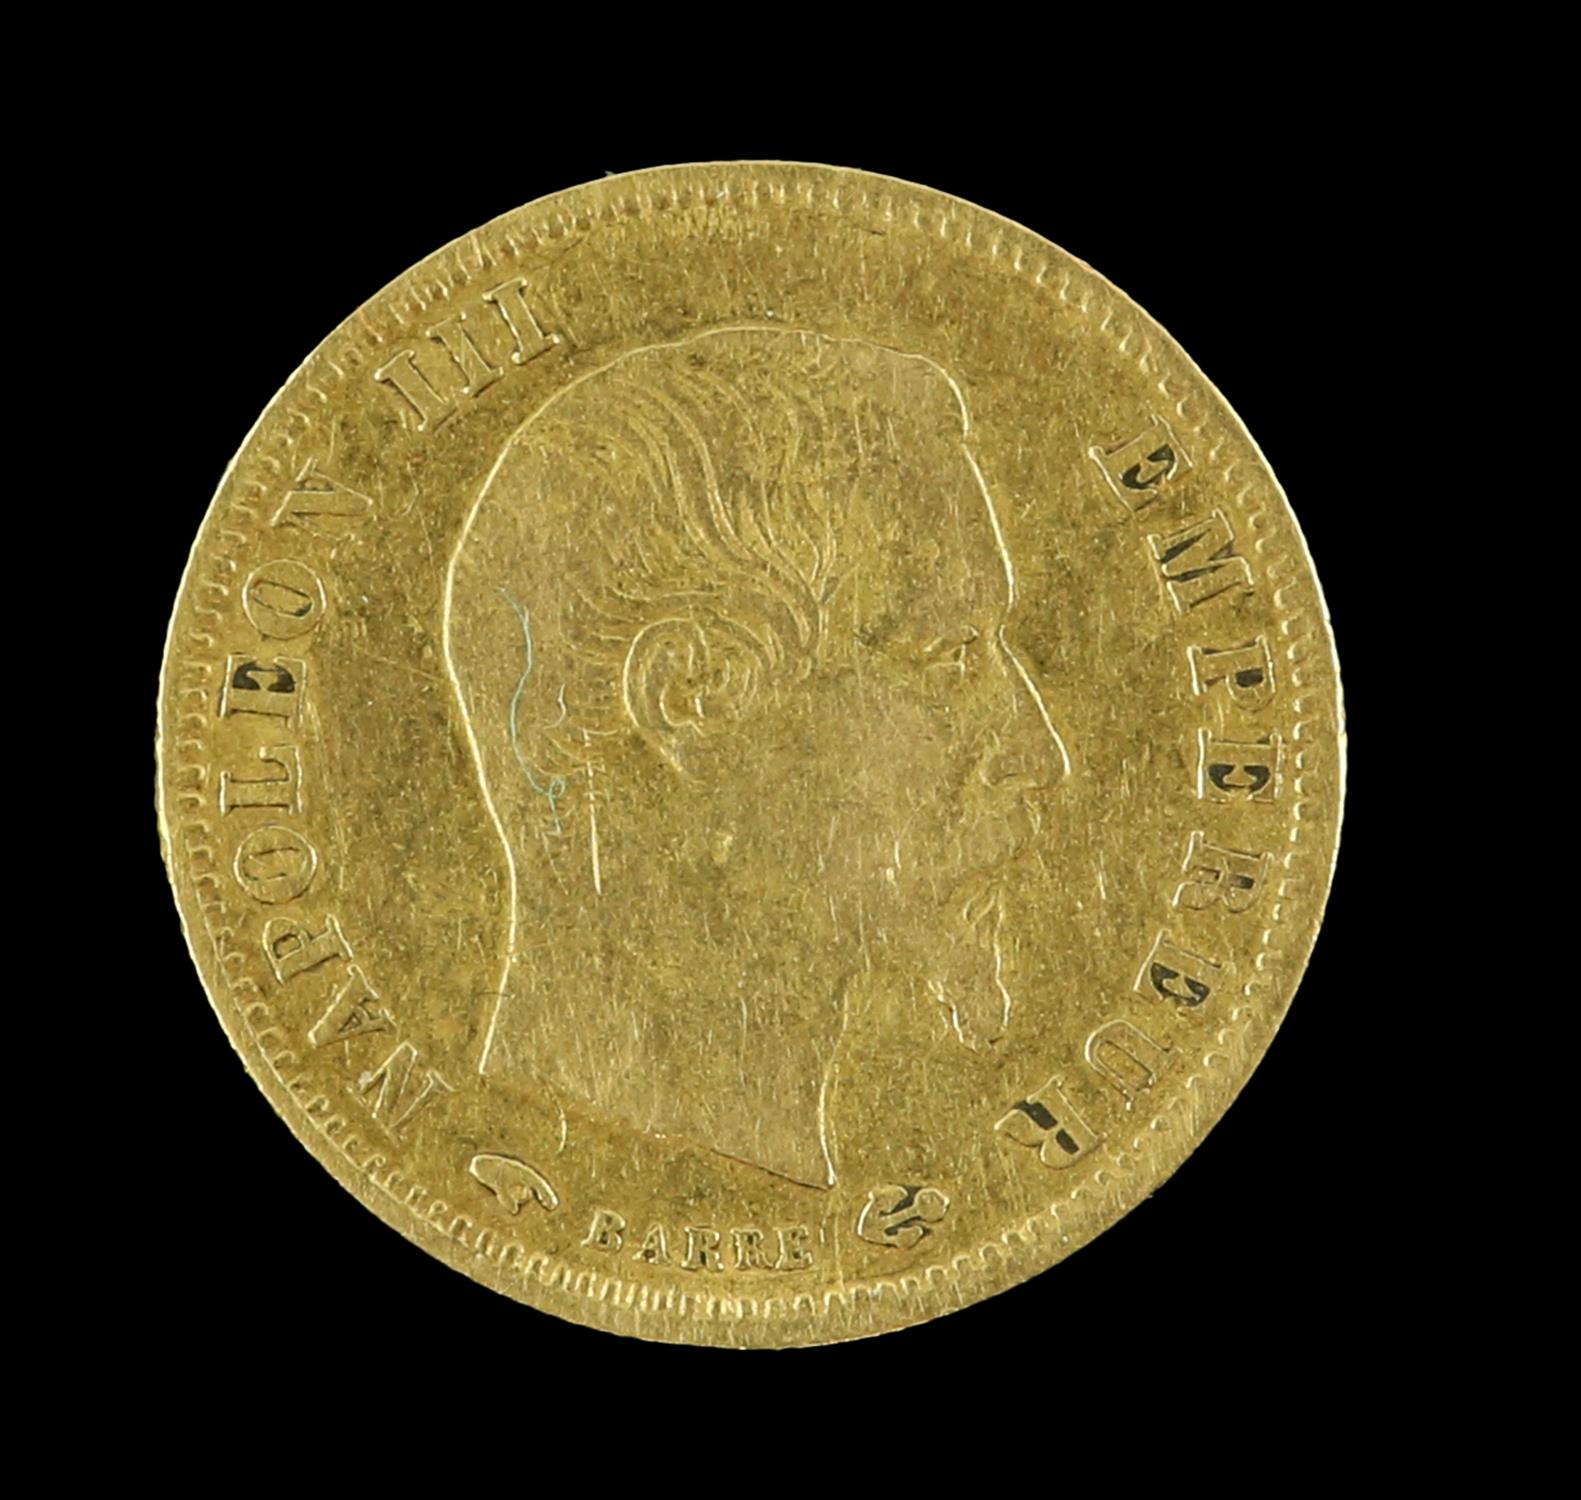 Napoleon III 1856 French 5 Franc gold coin - Image 2 of 2